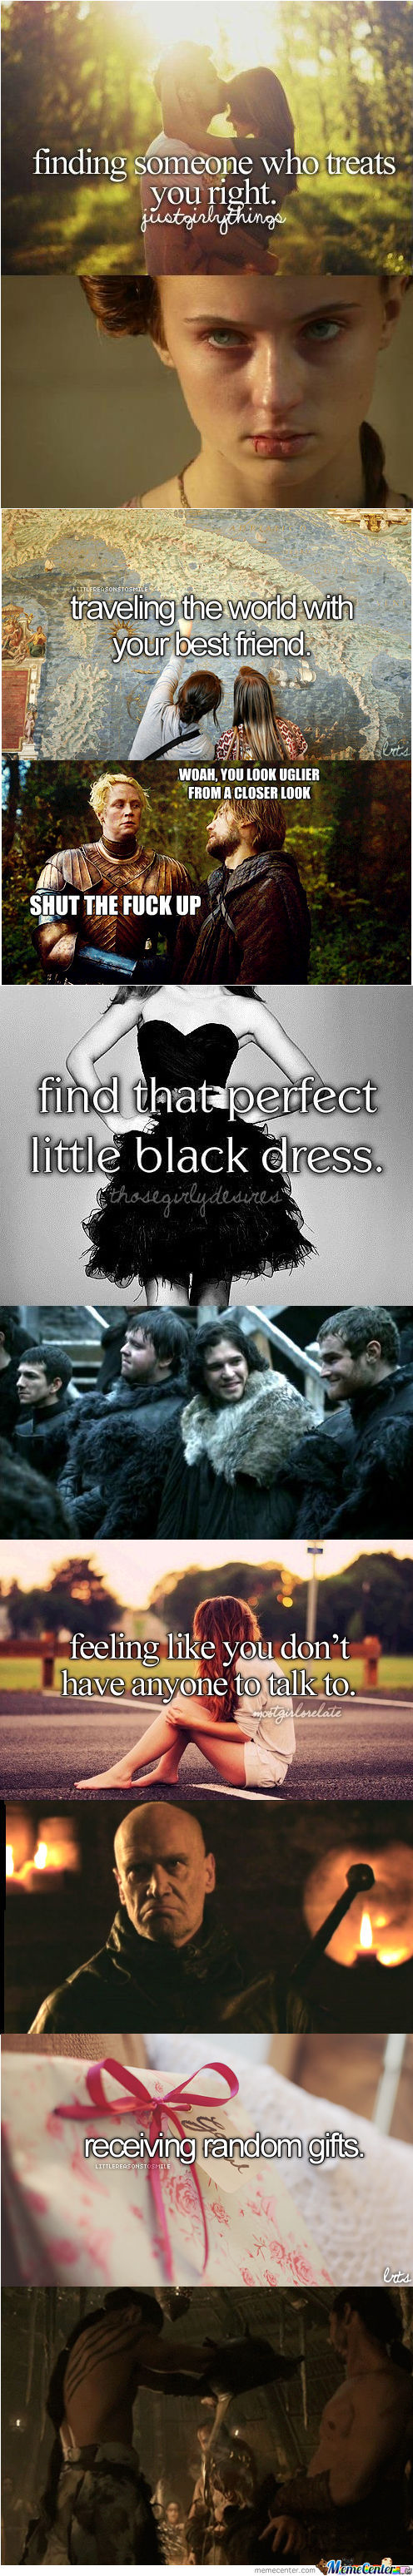 Game Of Thrones Responds To justgirlythings